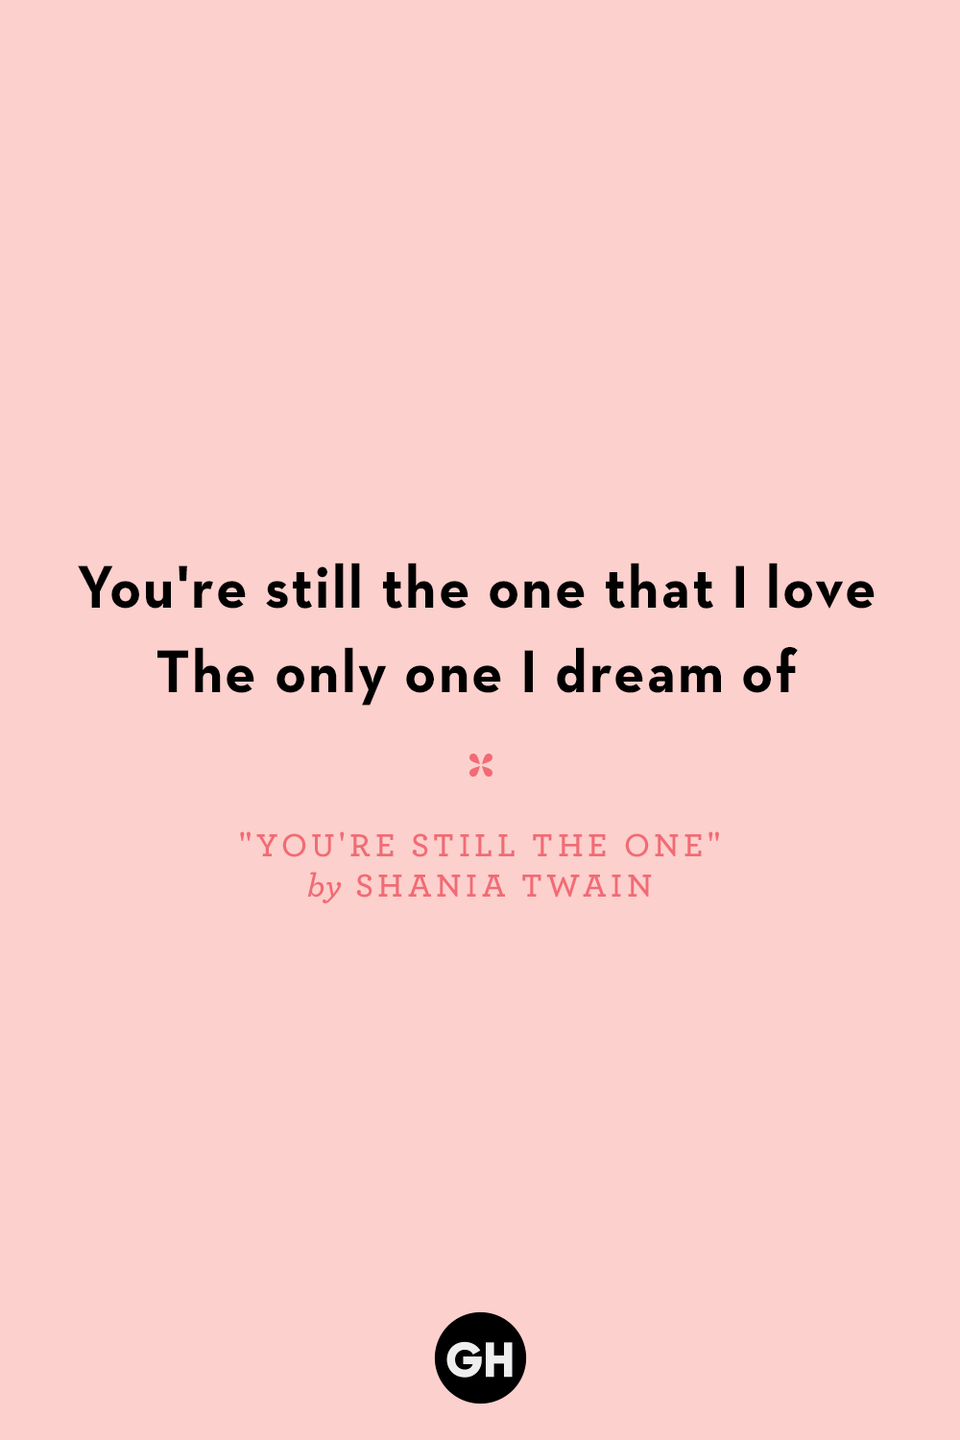 <p>You're still the one that I love</p><p>The only one I dream of</p>